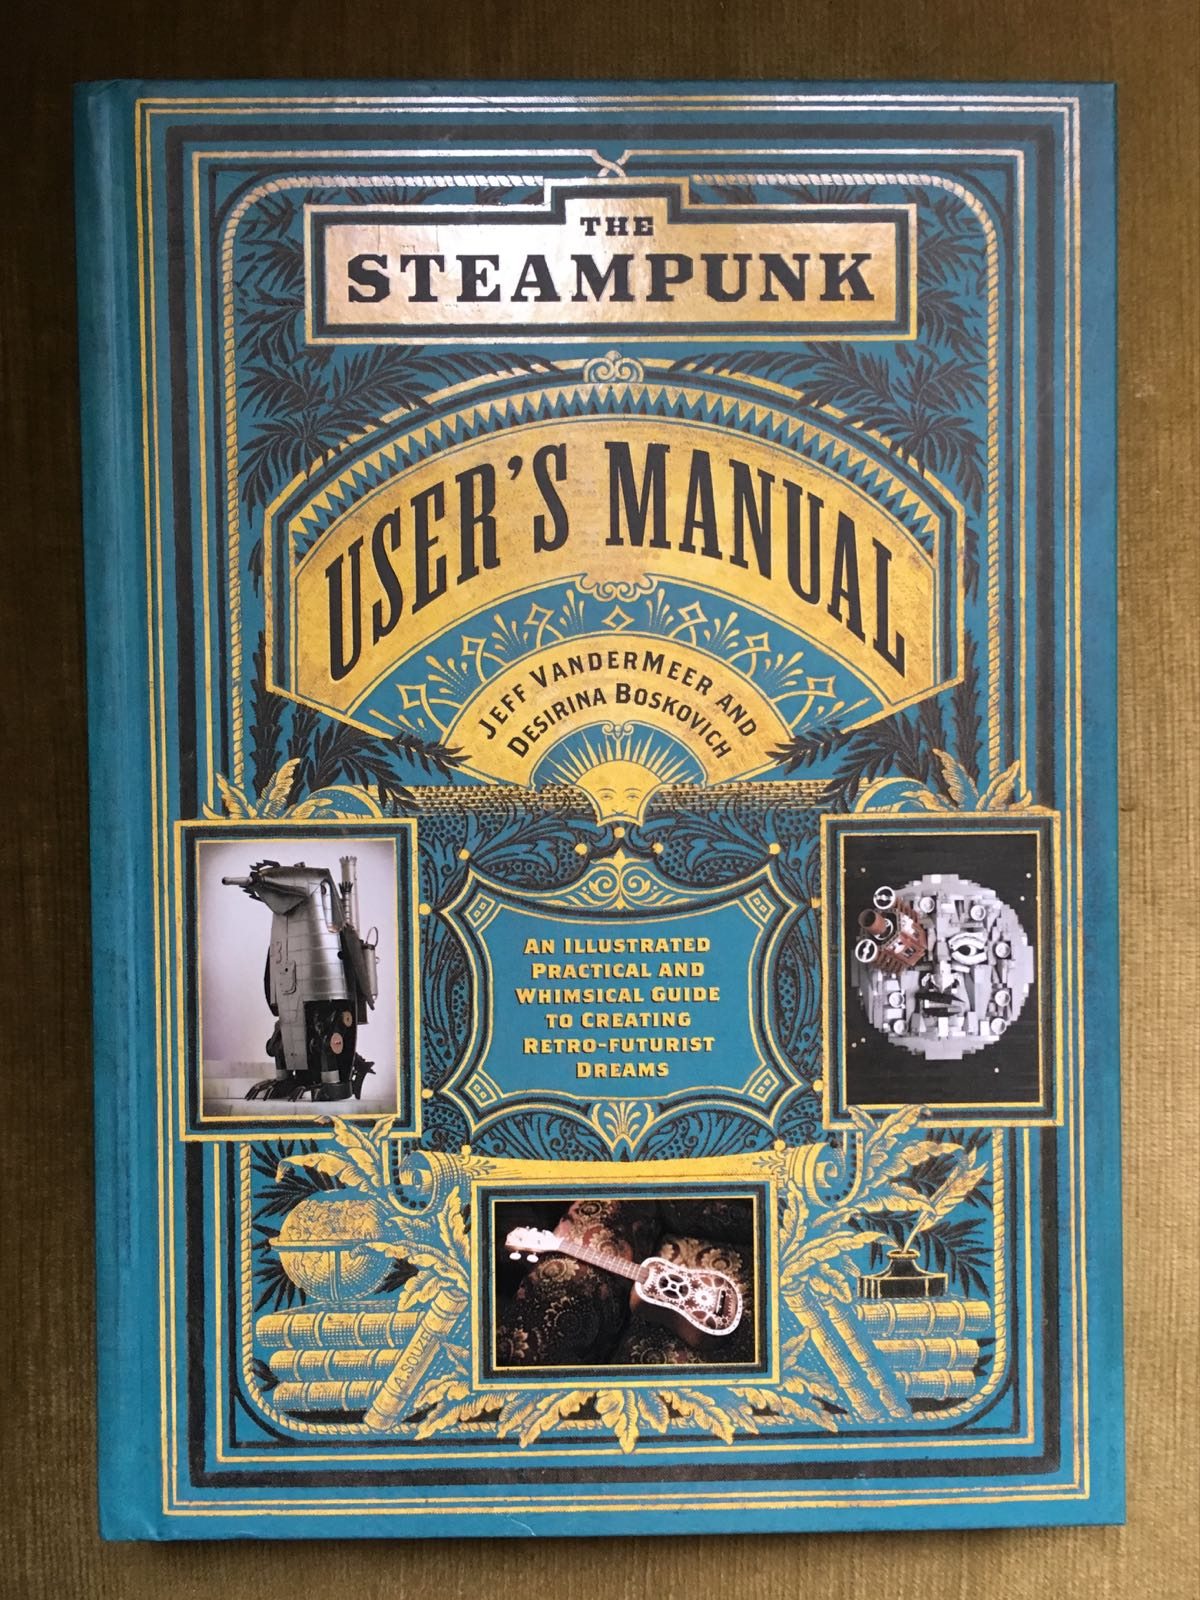 Book - The Steampunk User's Manual